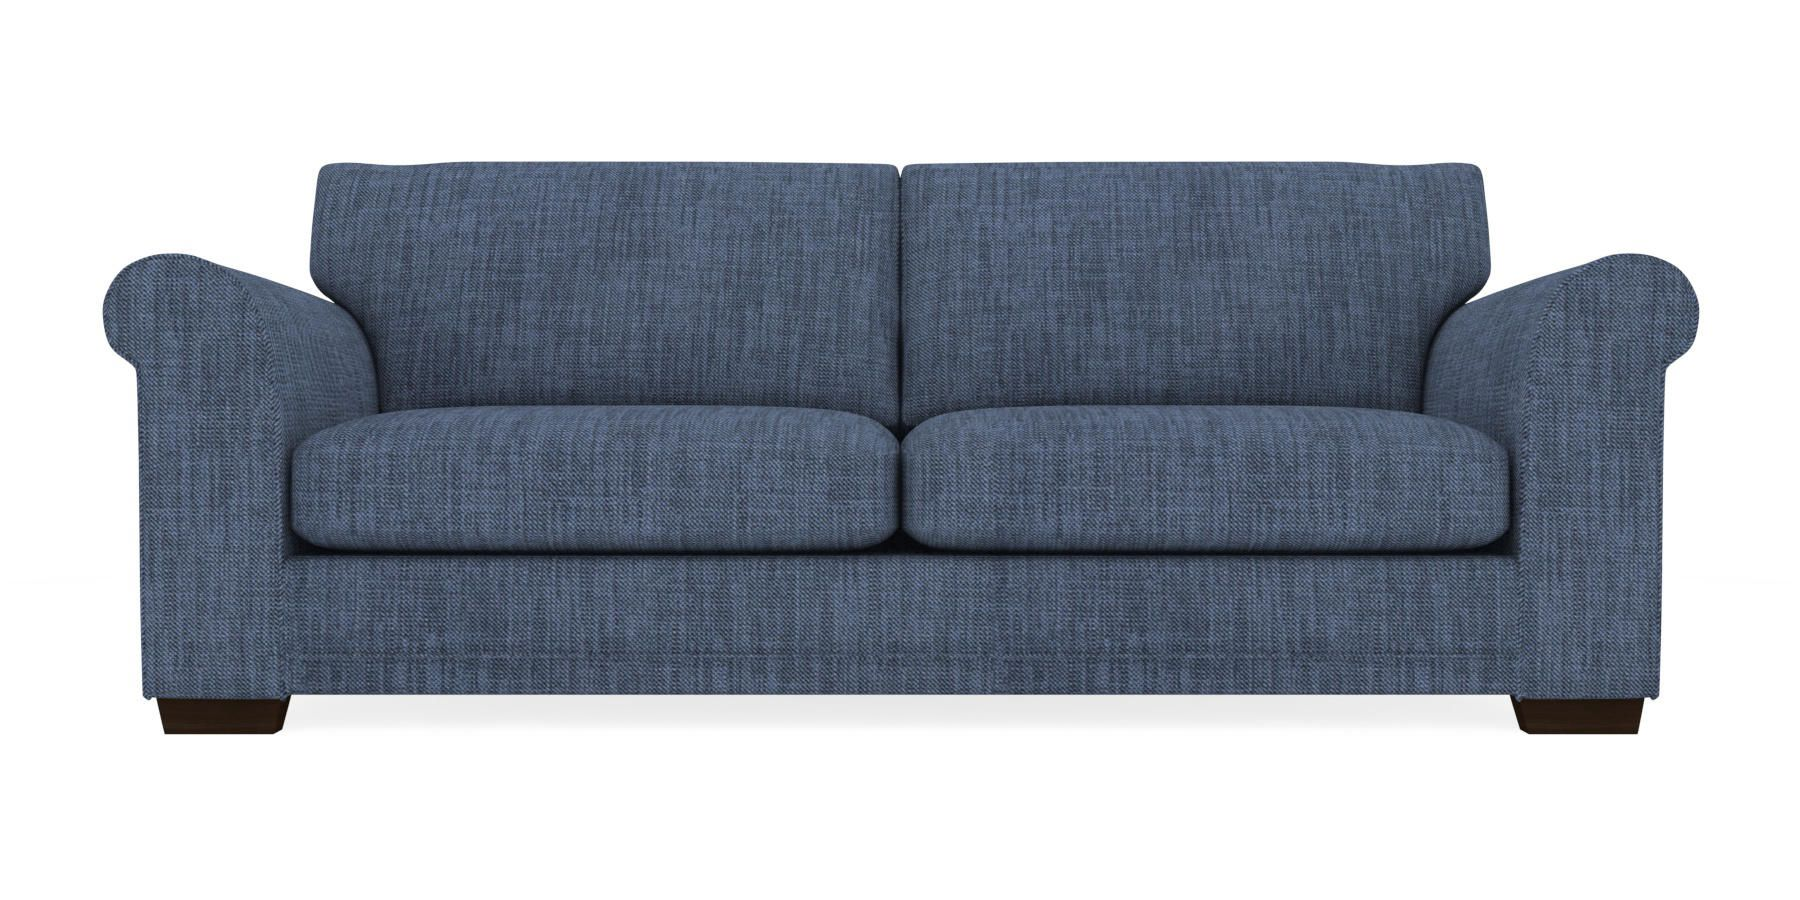 buy sofa uk in stock toulouse extra large 4 seats belgian soft twill